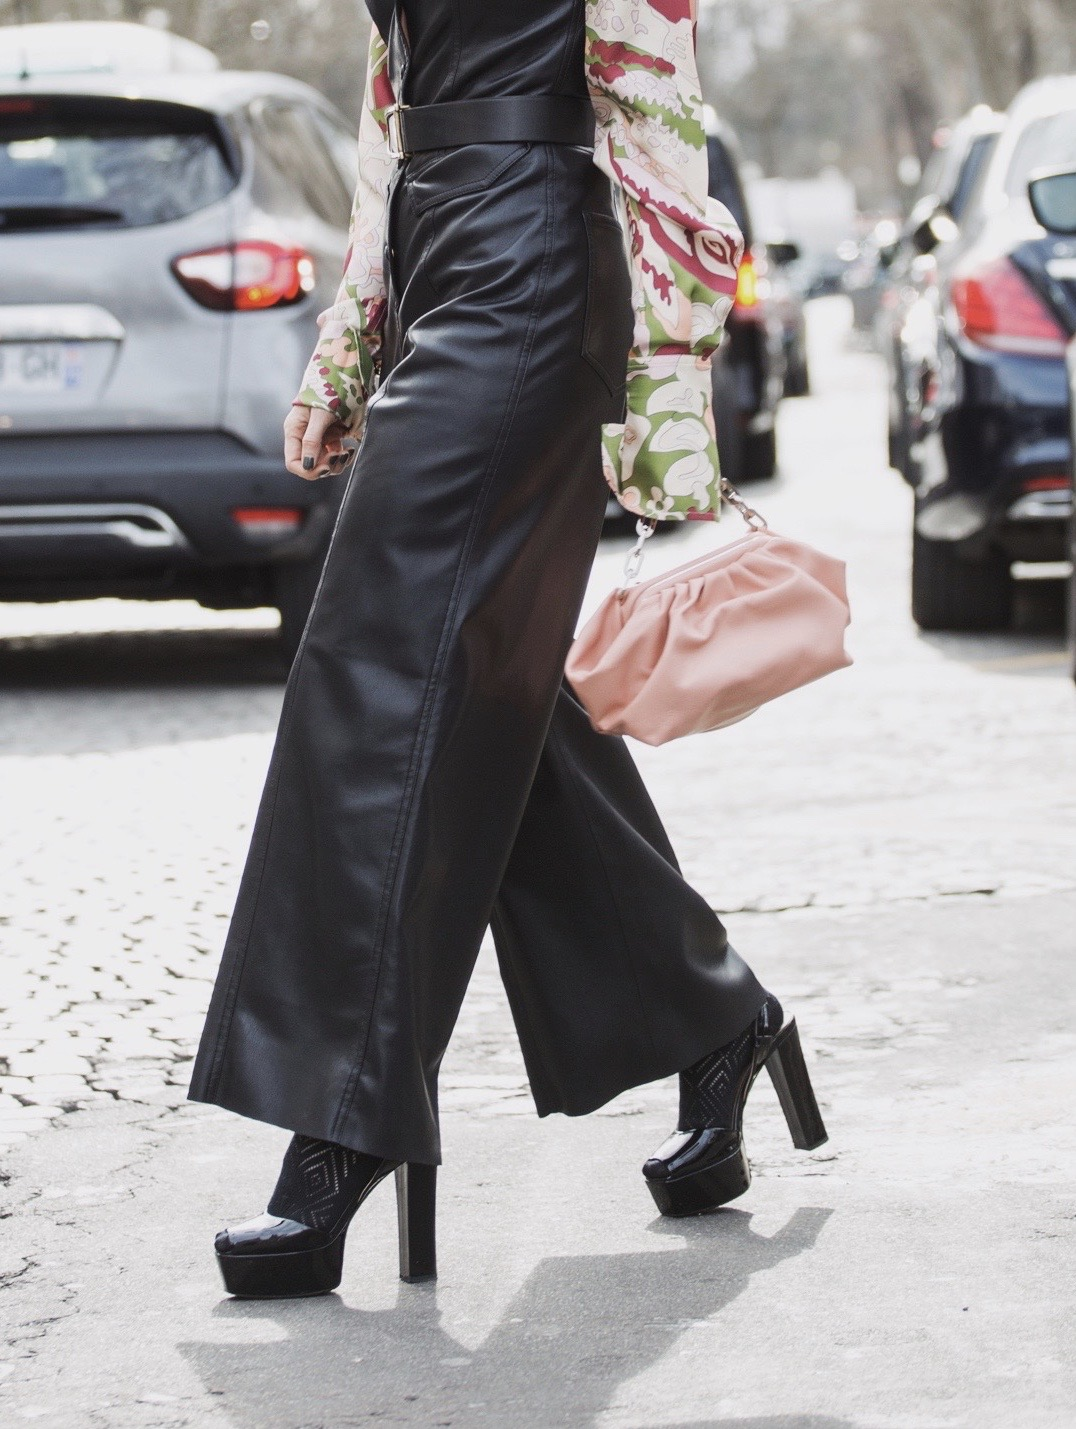 Giuseppe Zanotti High Platform Sandals during Paris Fashion Week Street Style 2020 Julia Comil